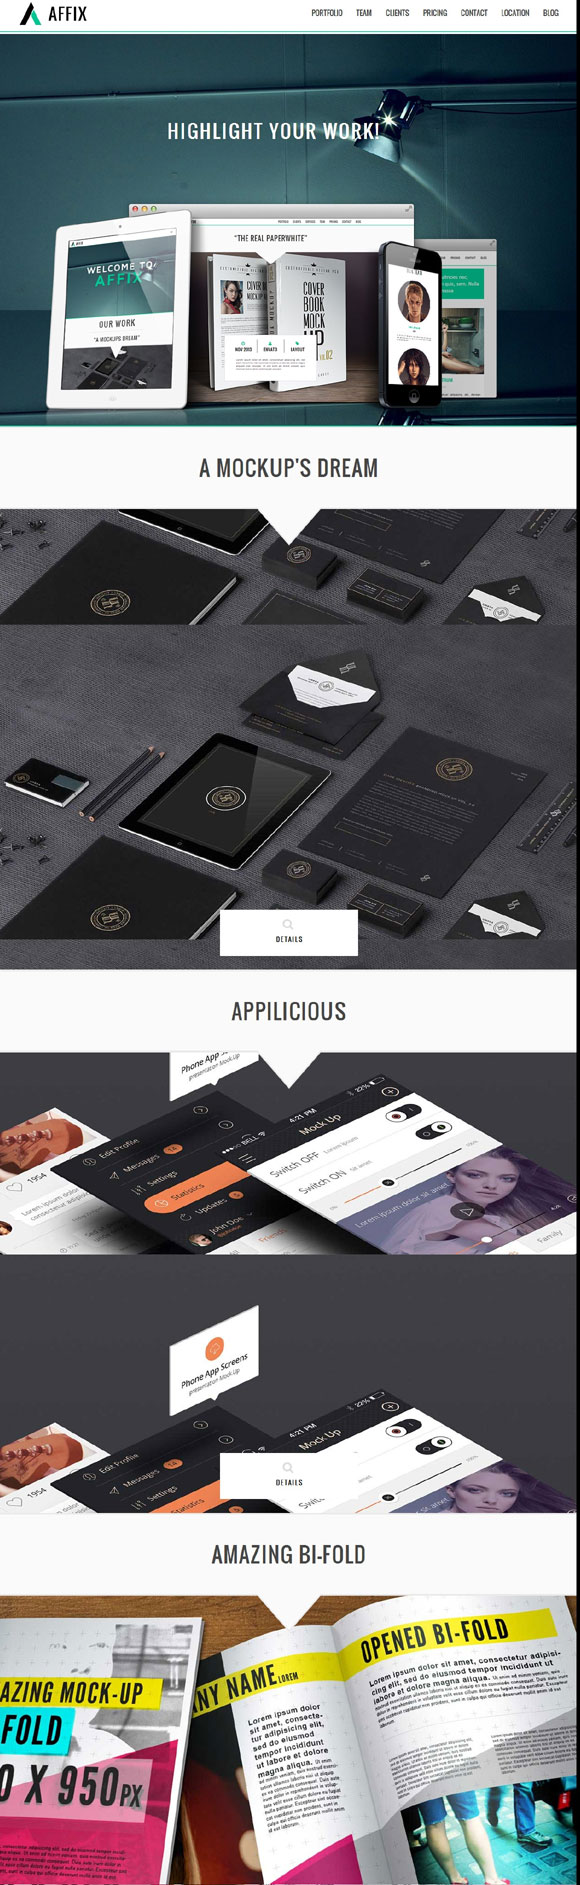 affix-creative-onepage-parallax-theme